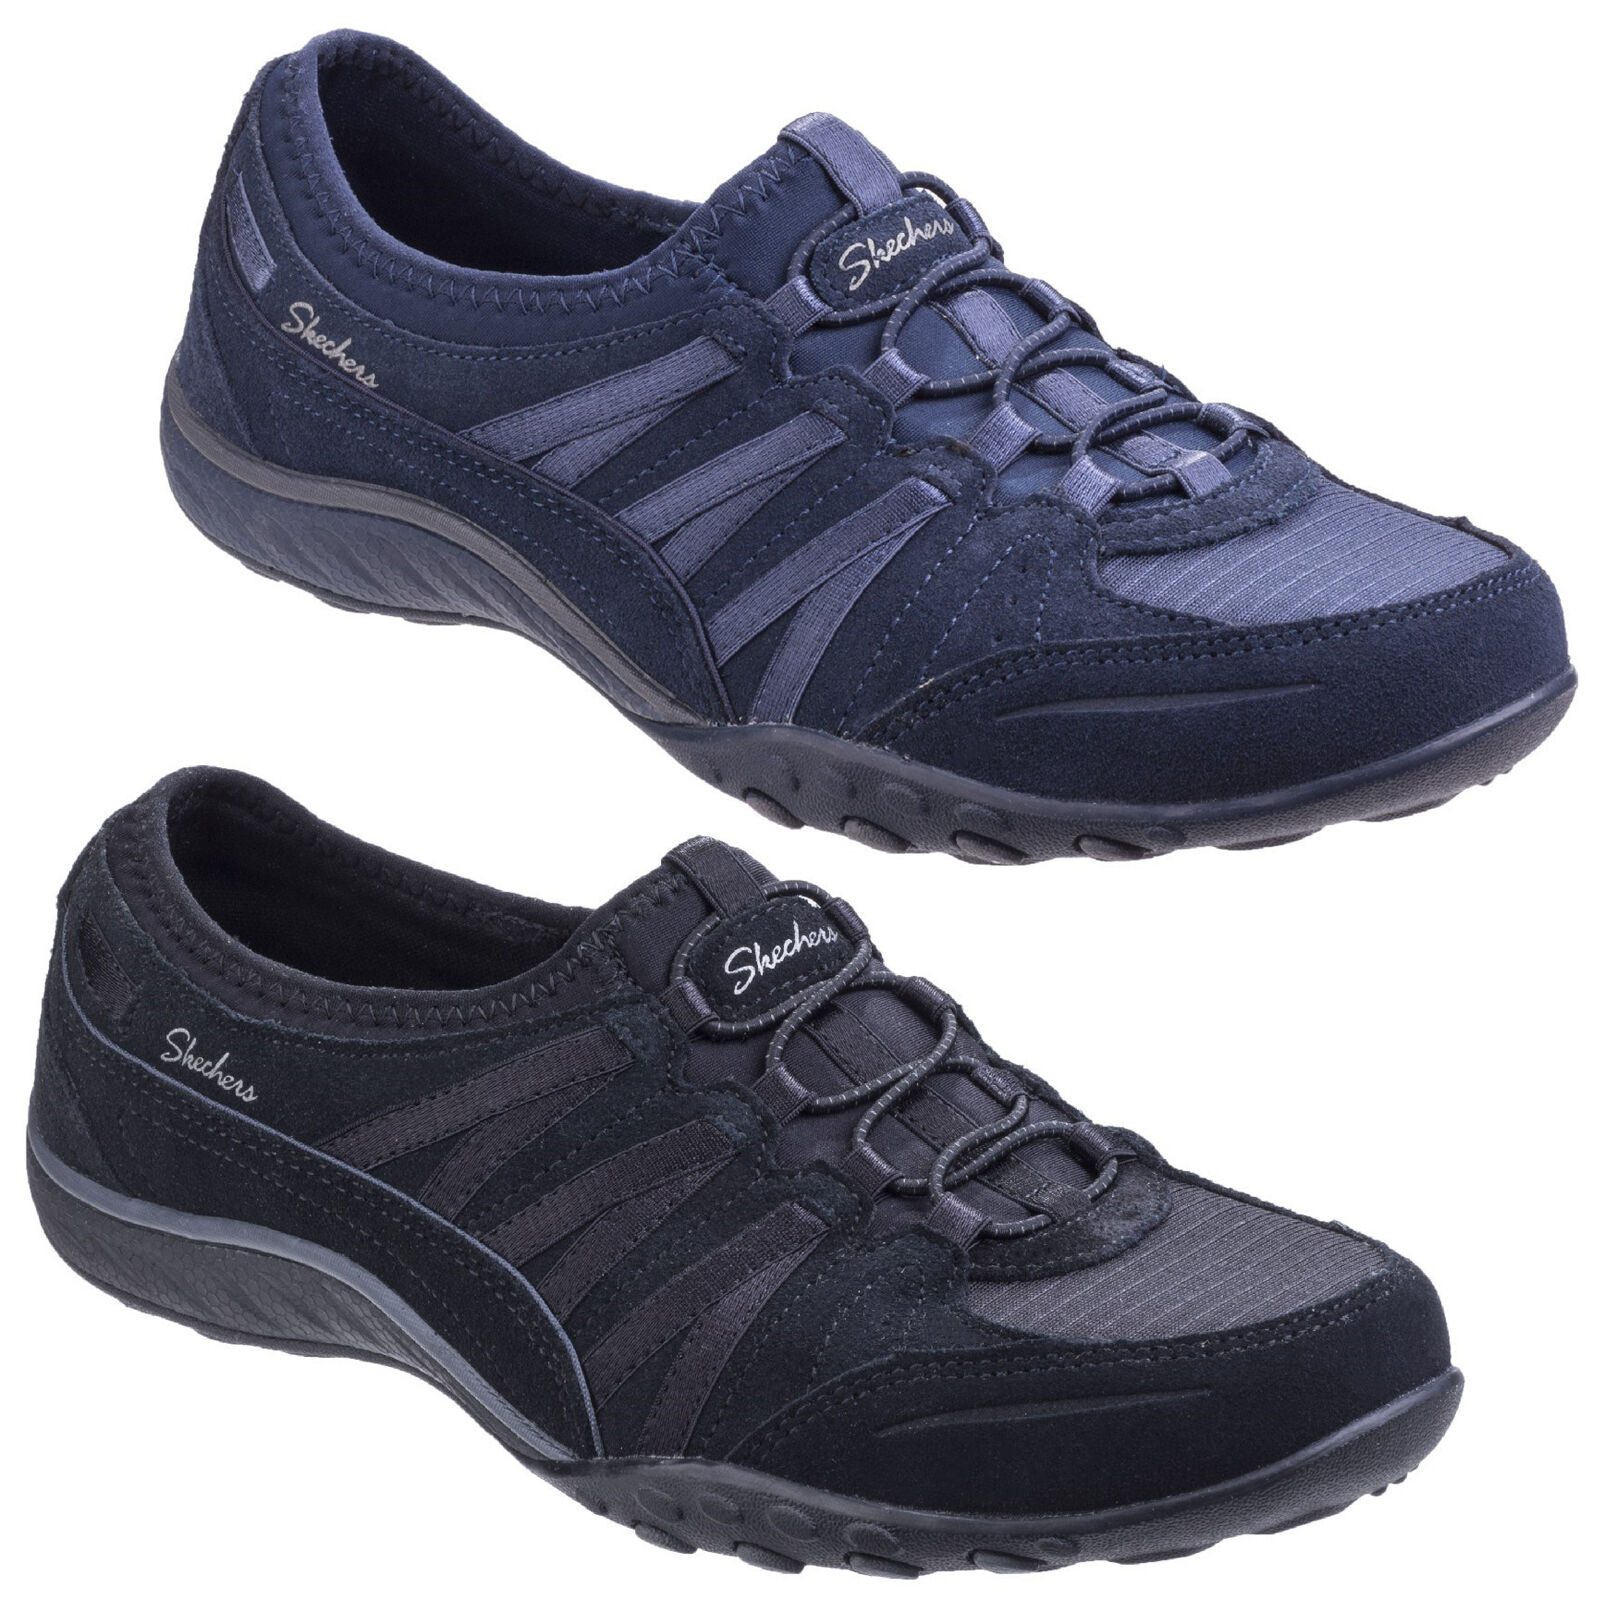 938324e15a9e Details about Skechers Breathe Easy Money Bags Trainers Womens Memory Foam  Slip On Shoes UK3-8